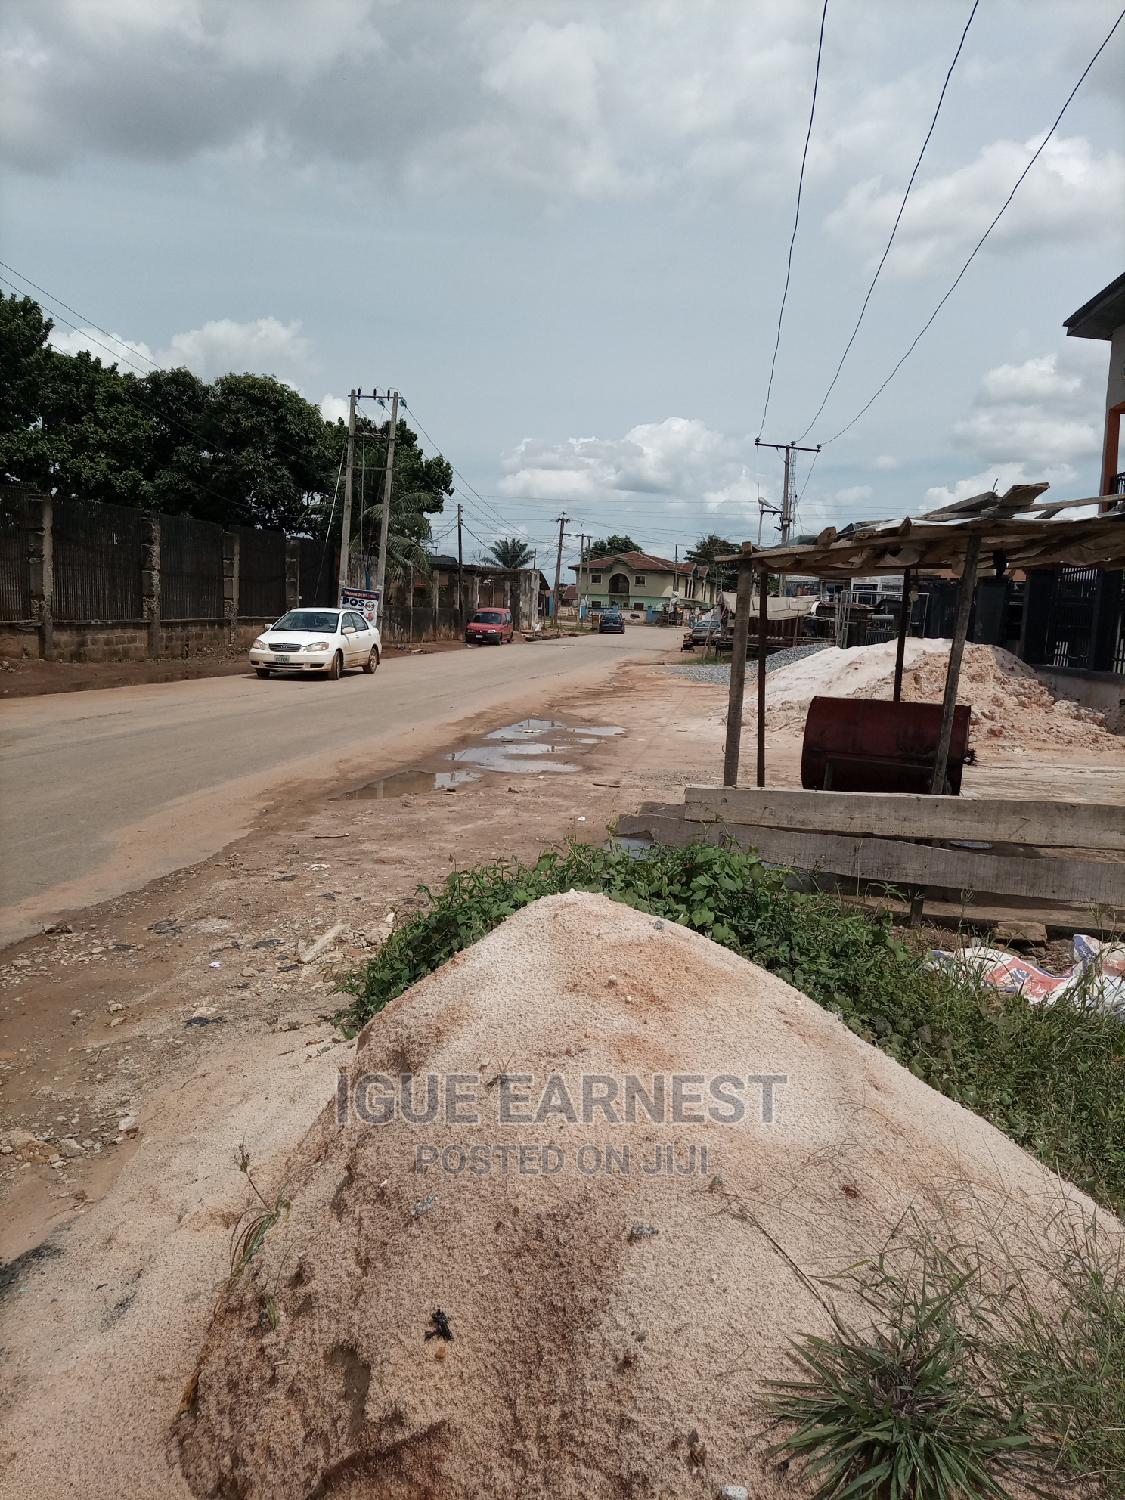 3 Bedrooms Block of Flats for Sale in OSI and Associate, Benin City   Houses & Apartments For Sale for sale in Benin City, Edo State, Nigeria